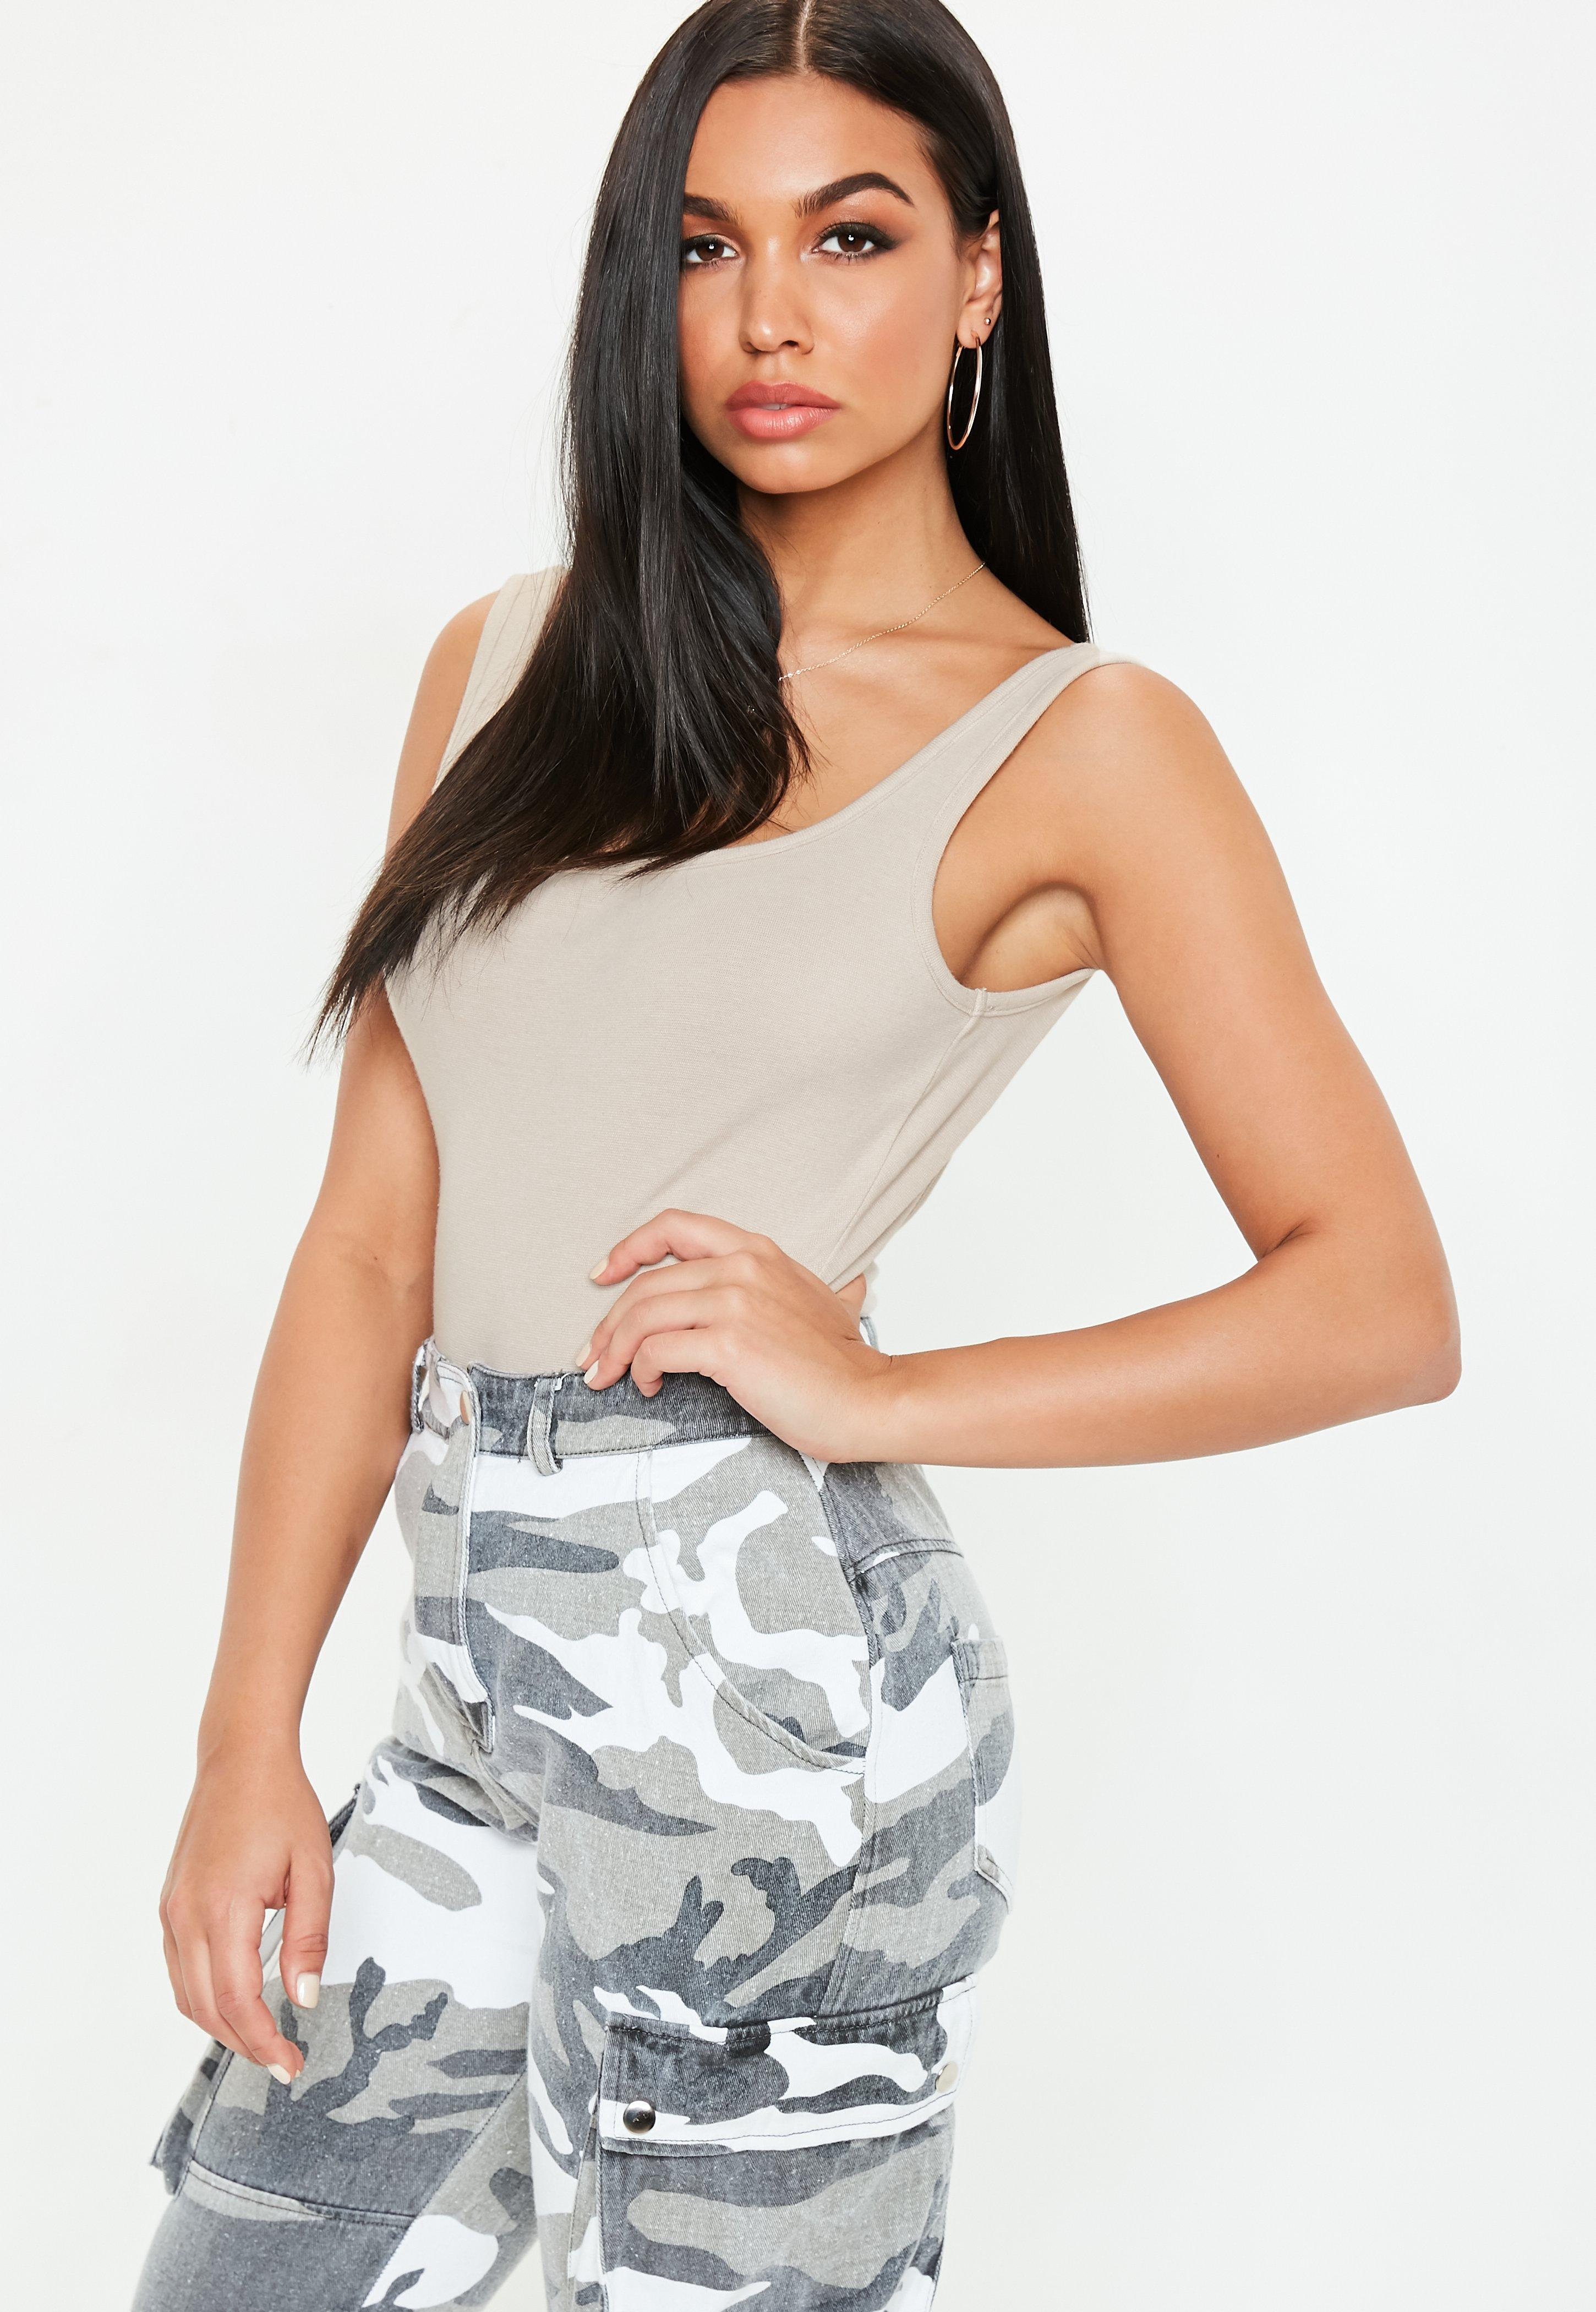 Missguided Nude Square Neck Cotton Jersey Bodysuit in Natural - Lyst f11d890de